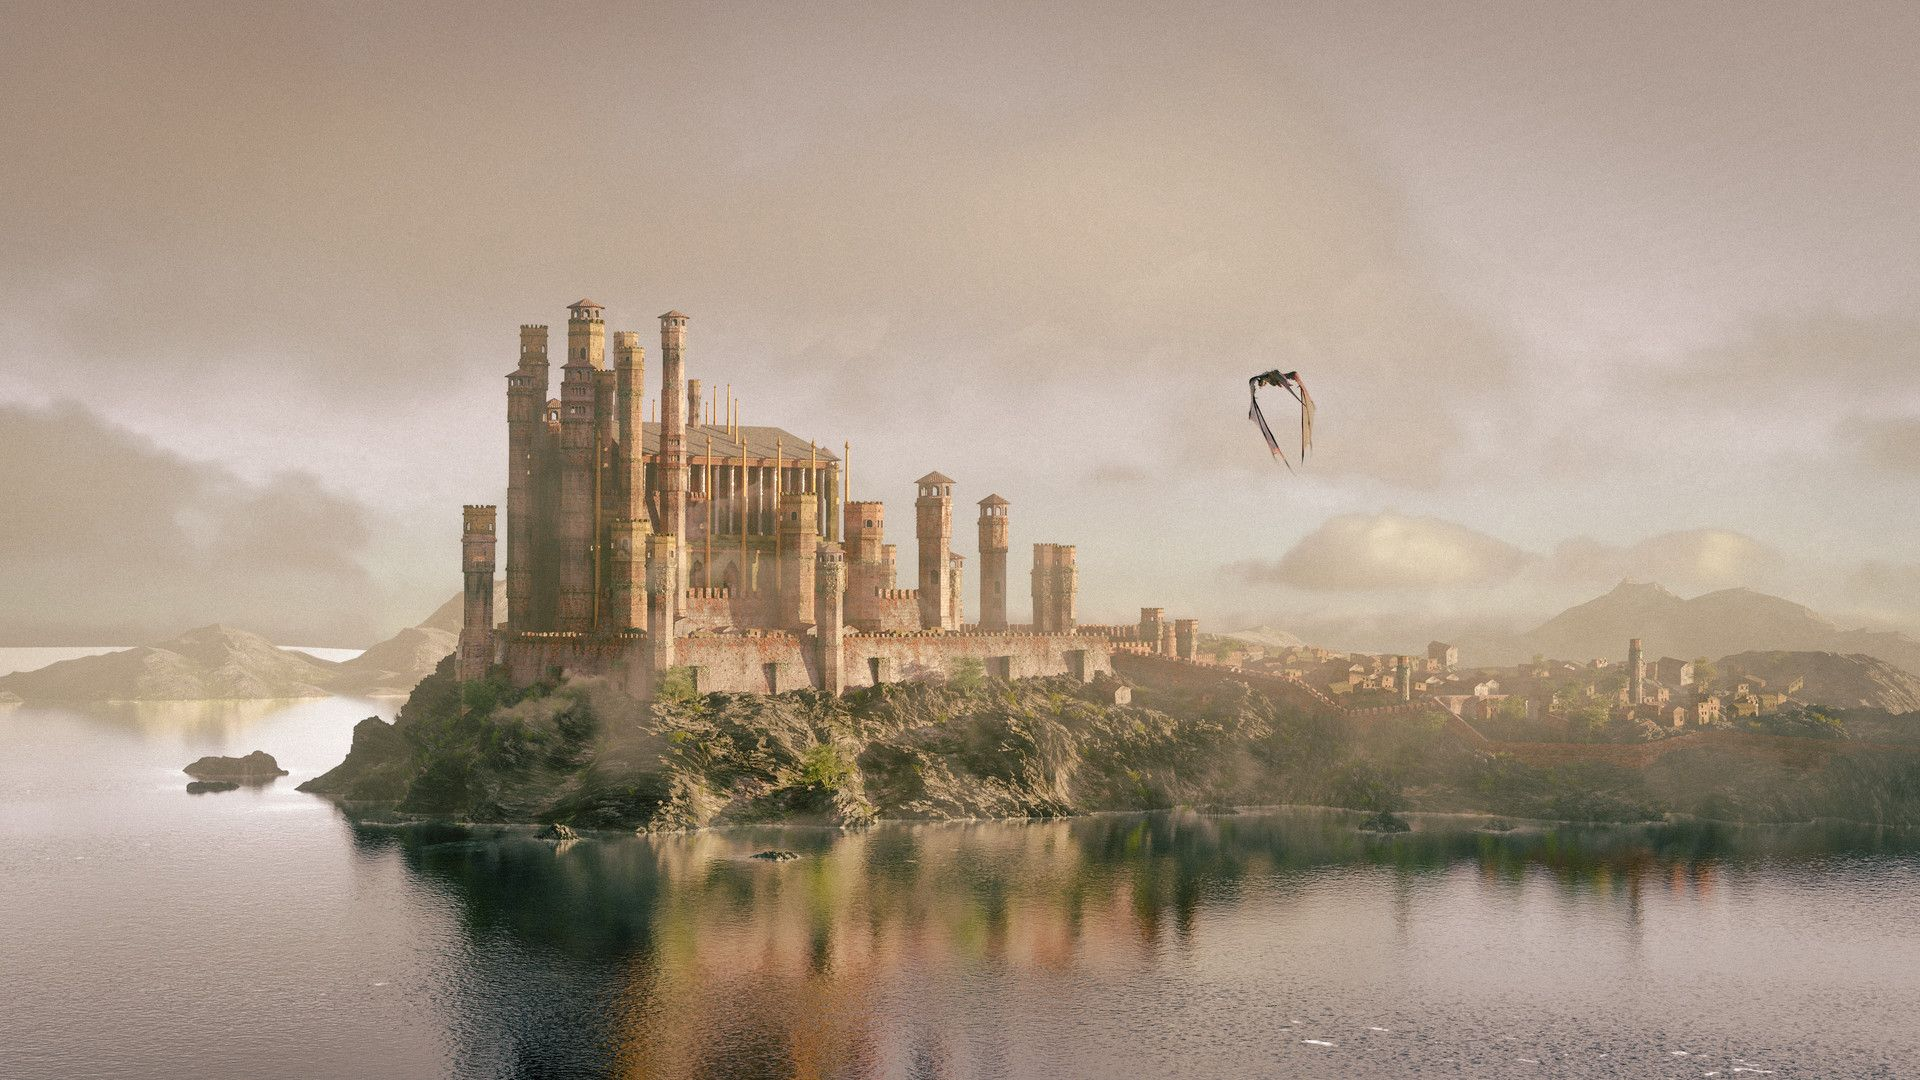 Game of Thrones landscape astle and dragon